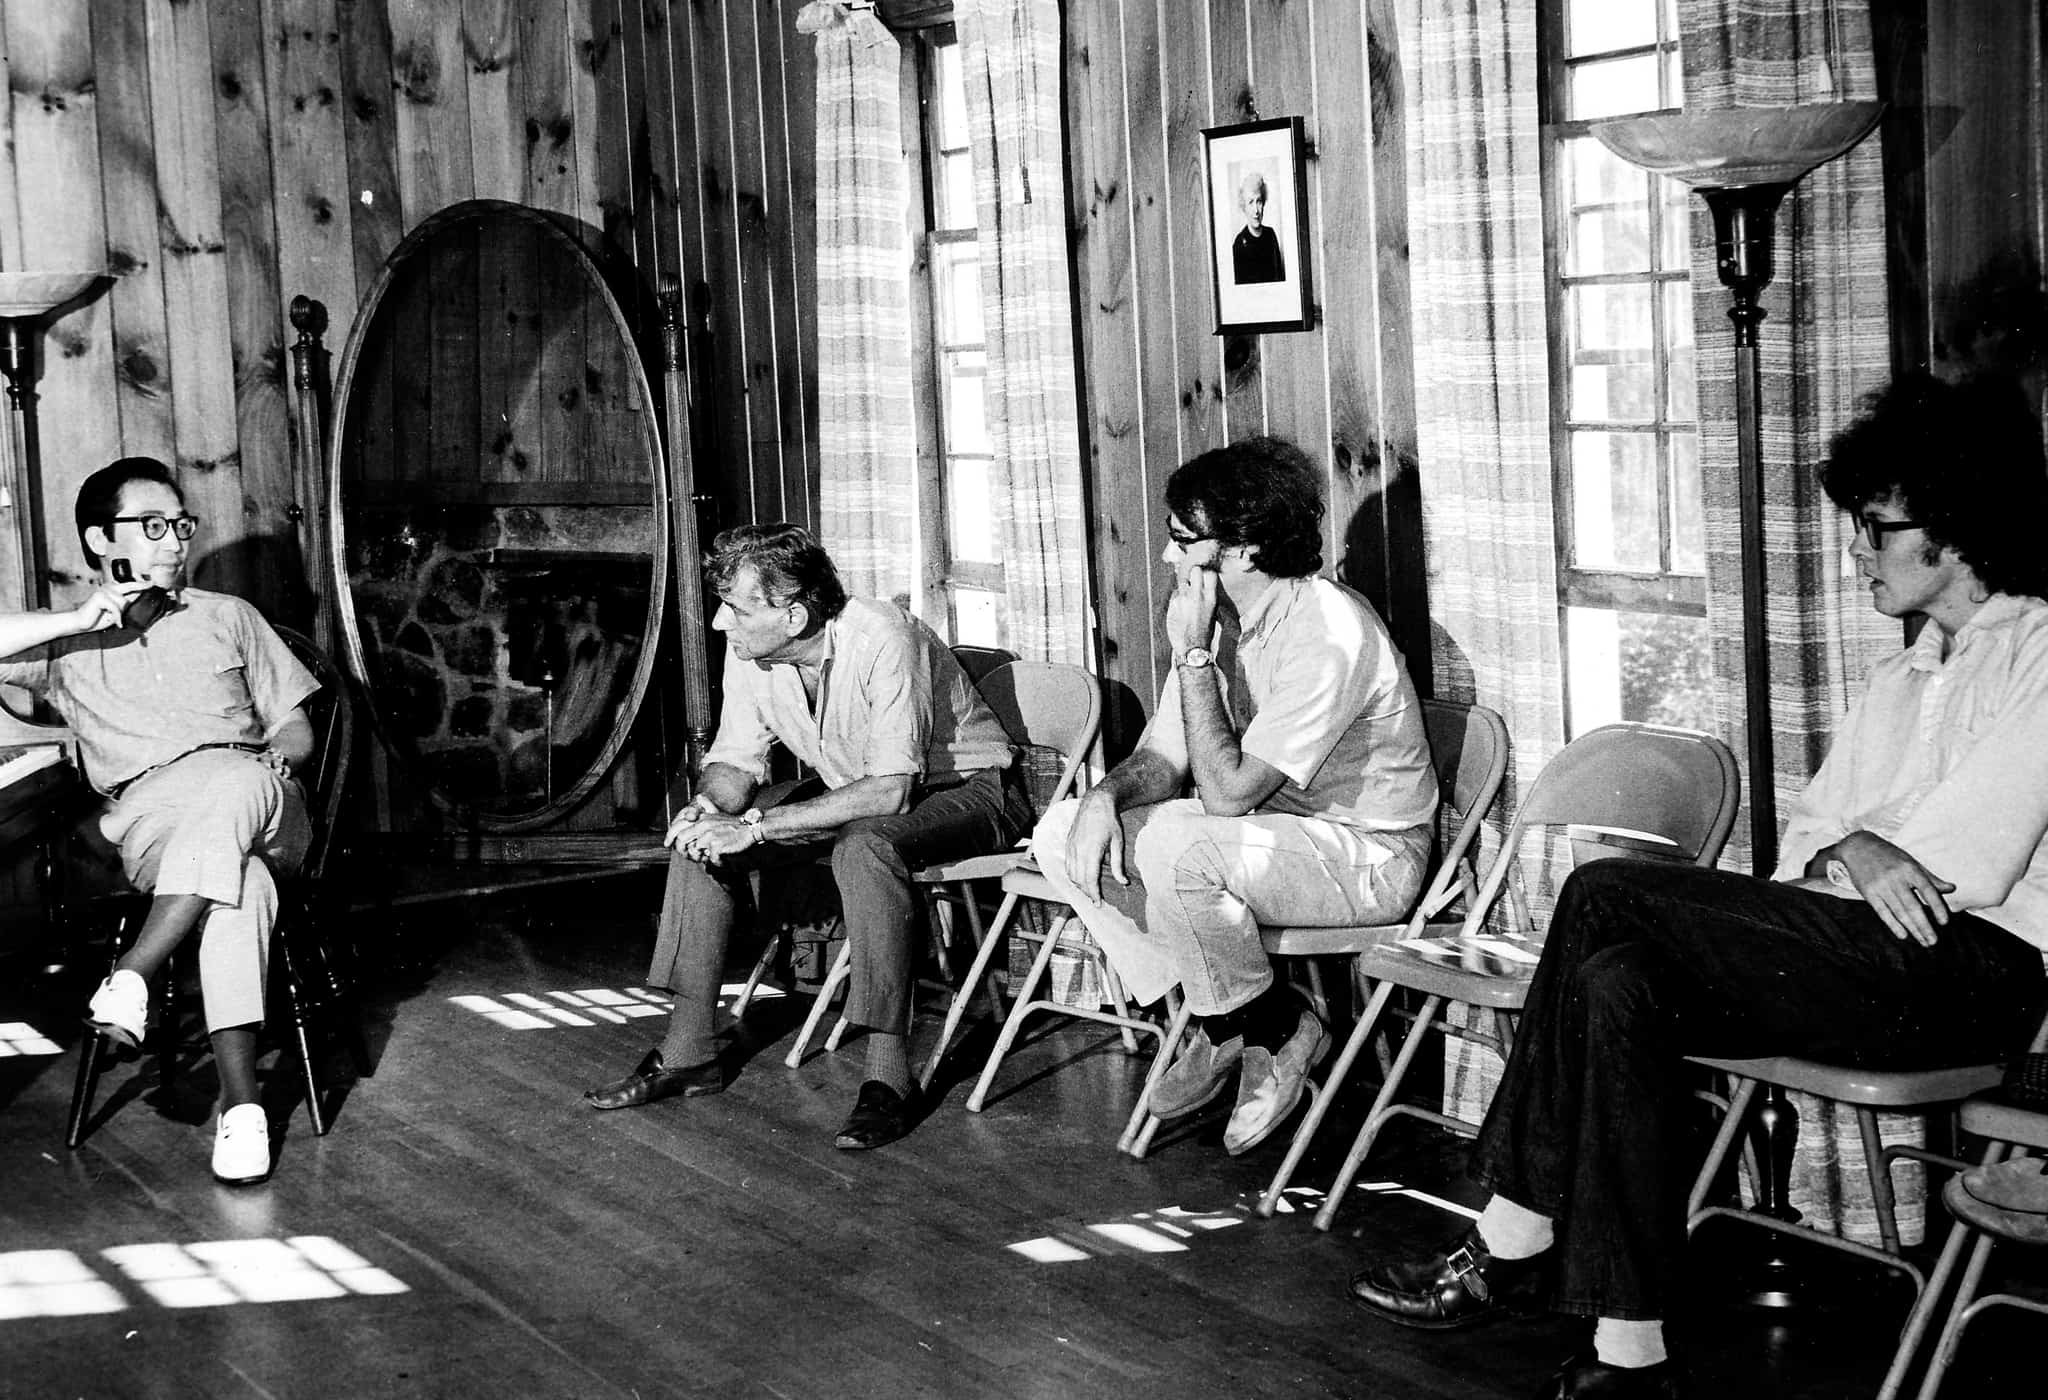 Chou Wen-chung, Leonard Bernstein and Students at Tanglewood, Lenox, Massachusetts.